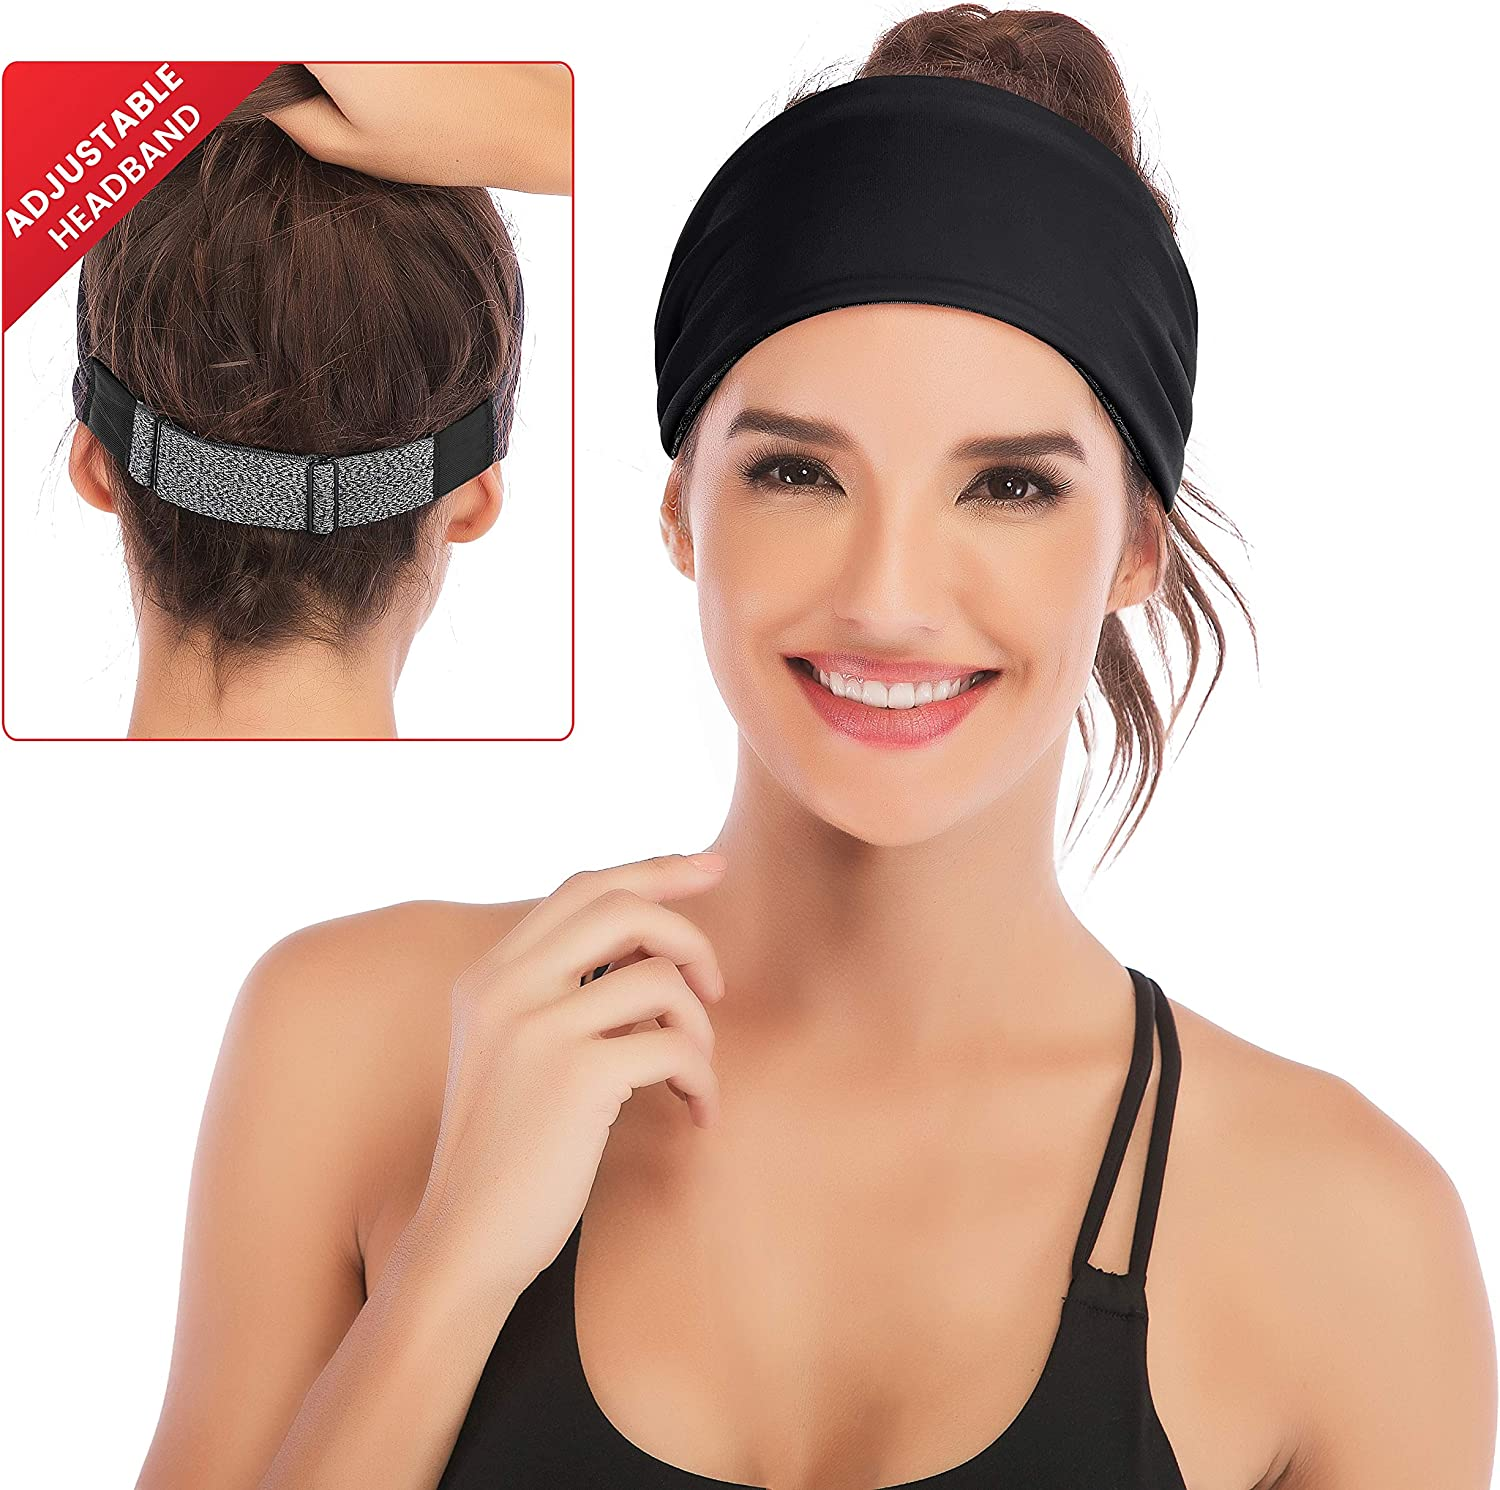 Tsun 7 Pcs Women Headband Solid Color Head Wrap Sports Yoga Hair Band Hair Accessories